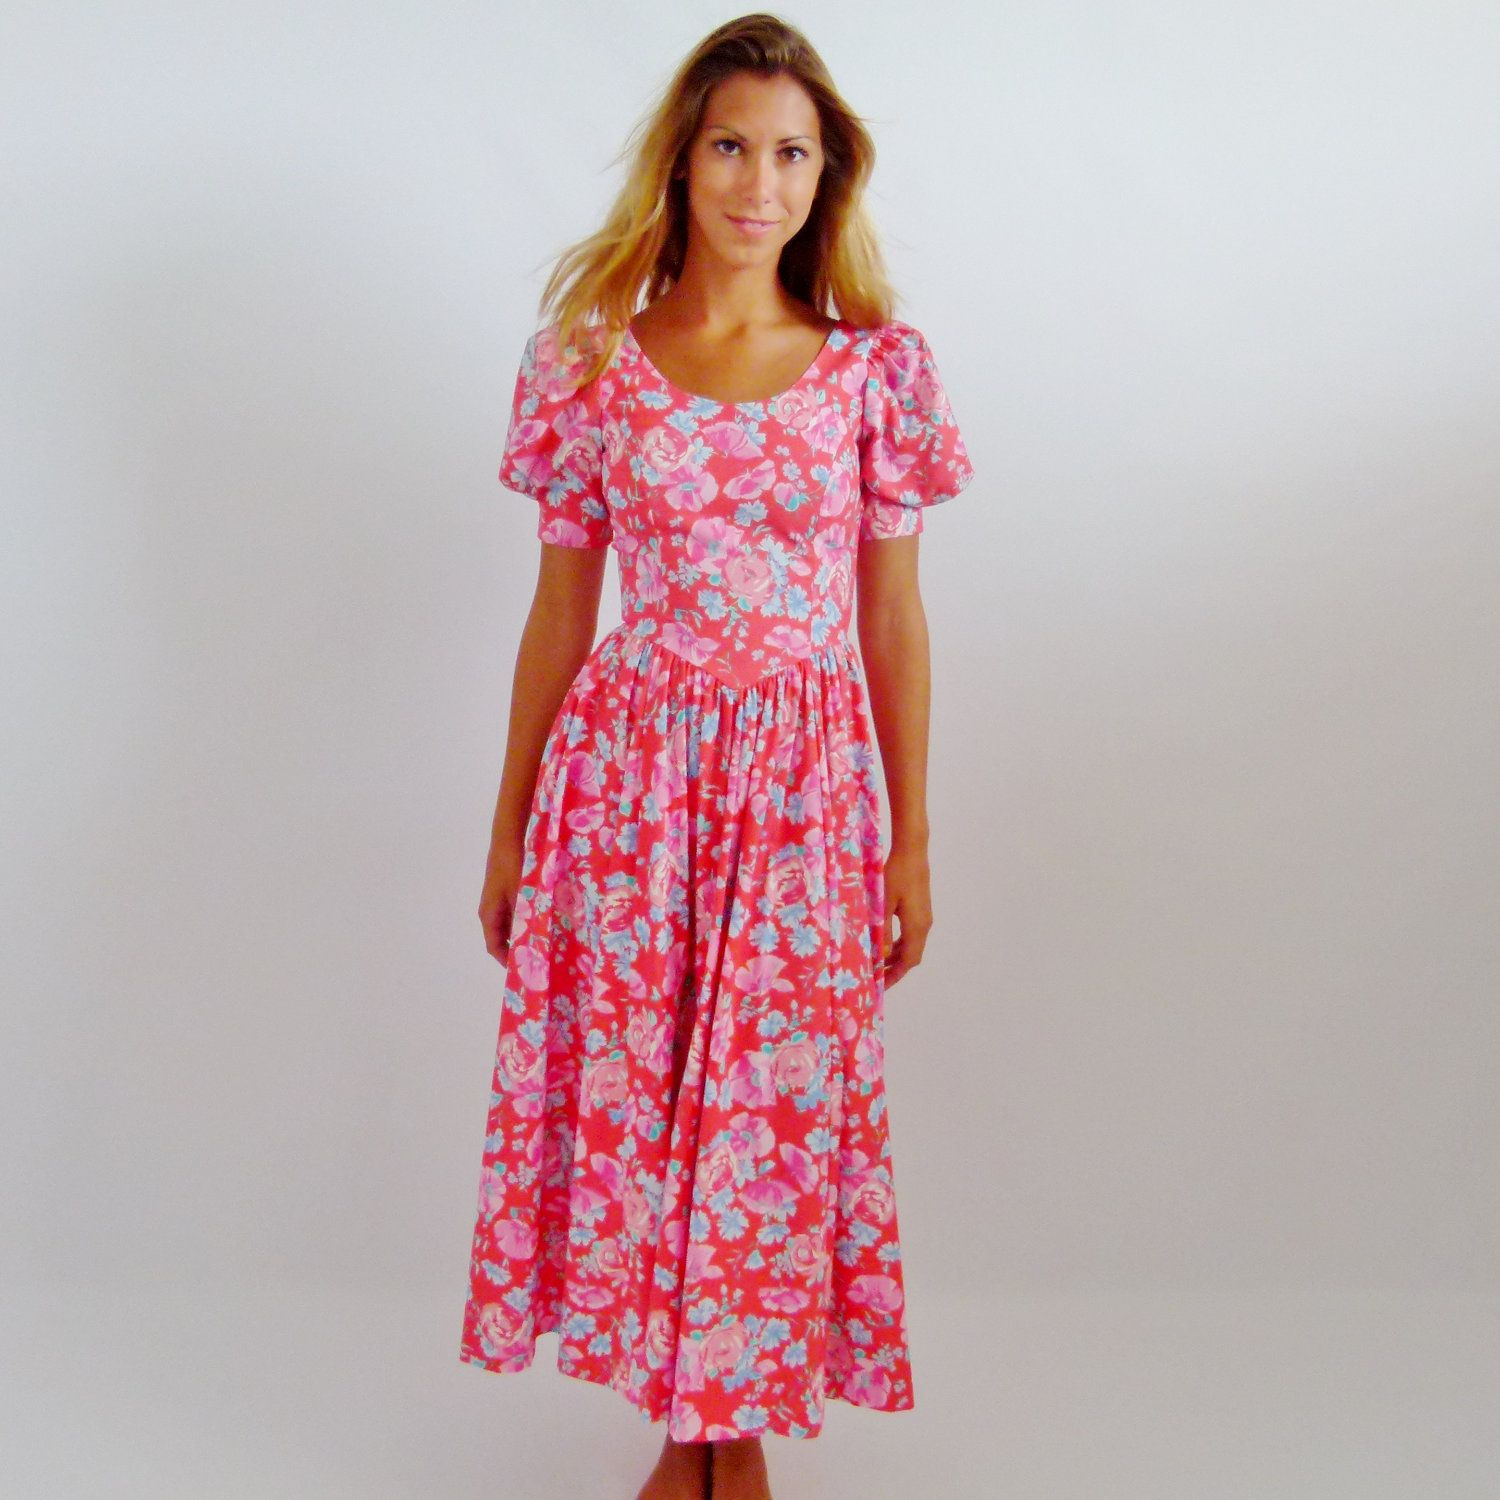 Vintage 80s Laura Ashley Pink Floral Cotton Summer Dress | AppaArels ...